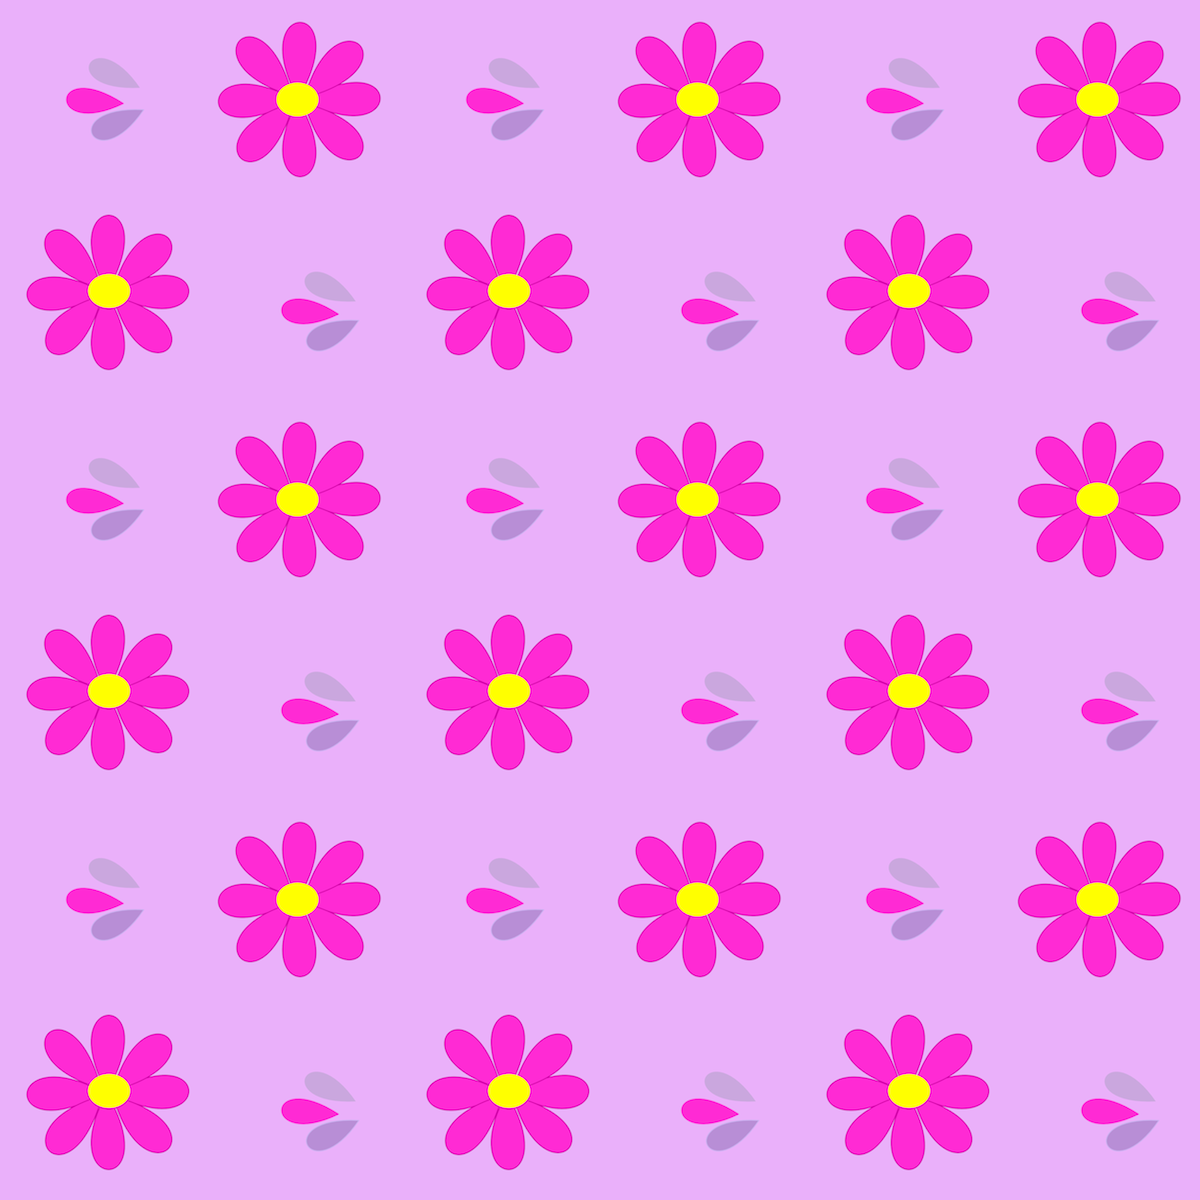 Free digital bright daisy scrapbooking papers ...